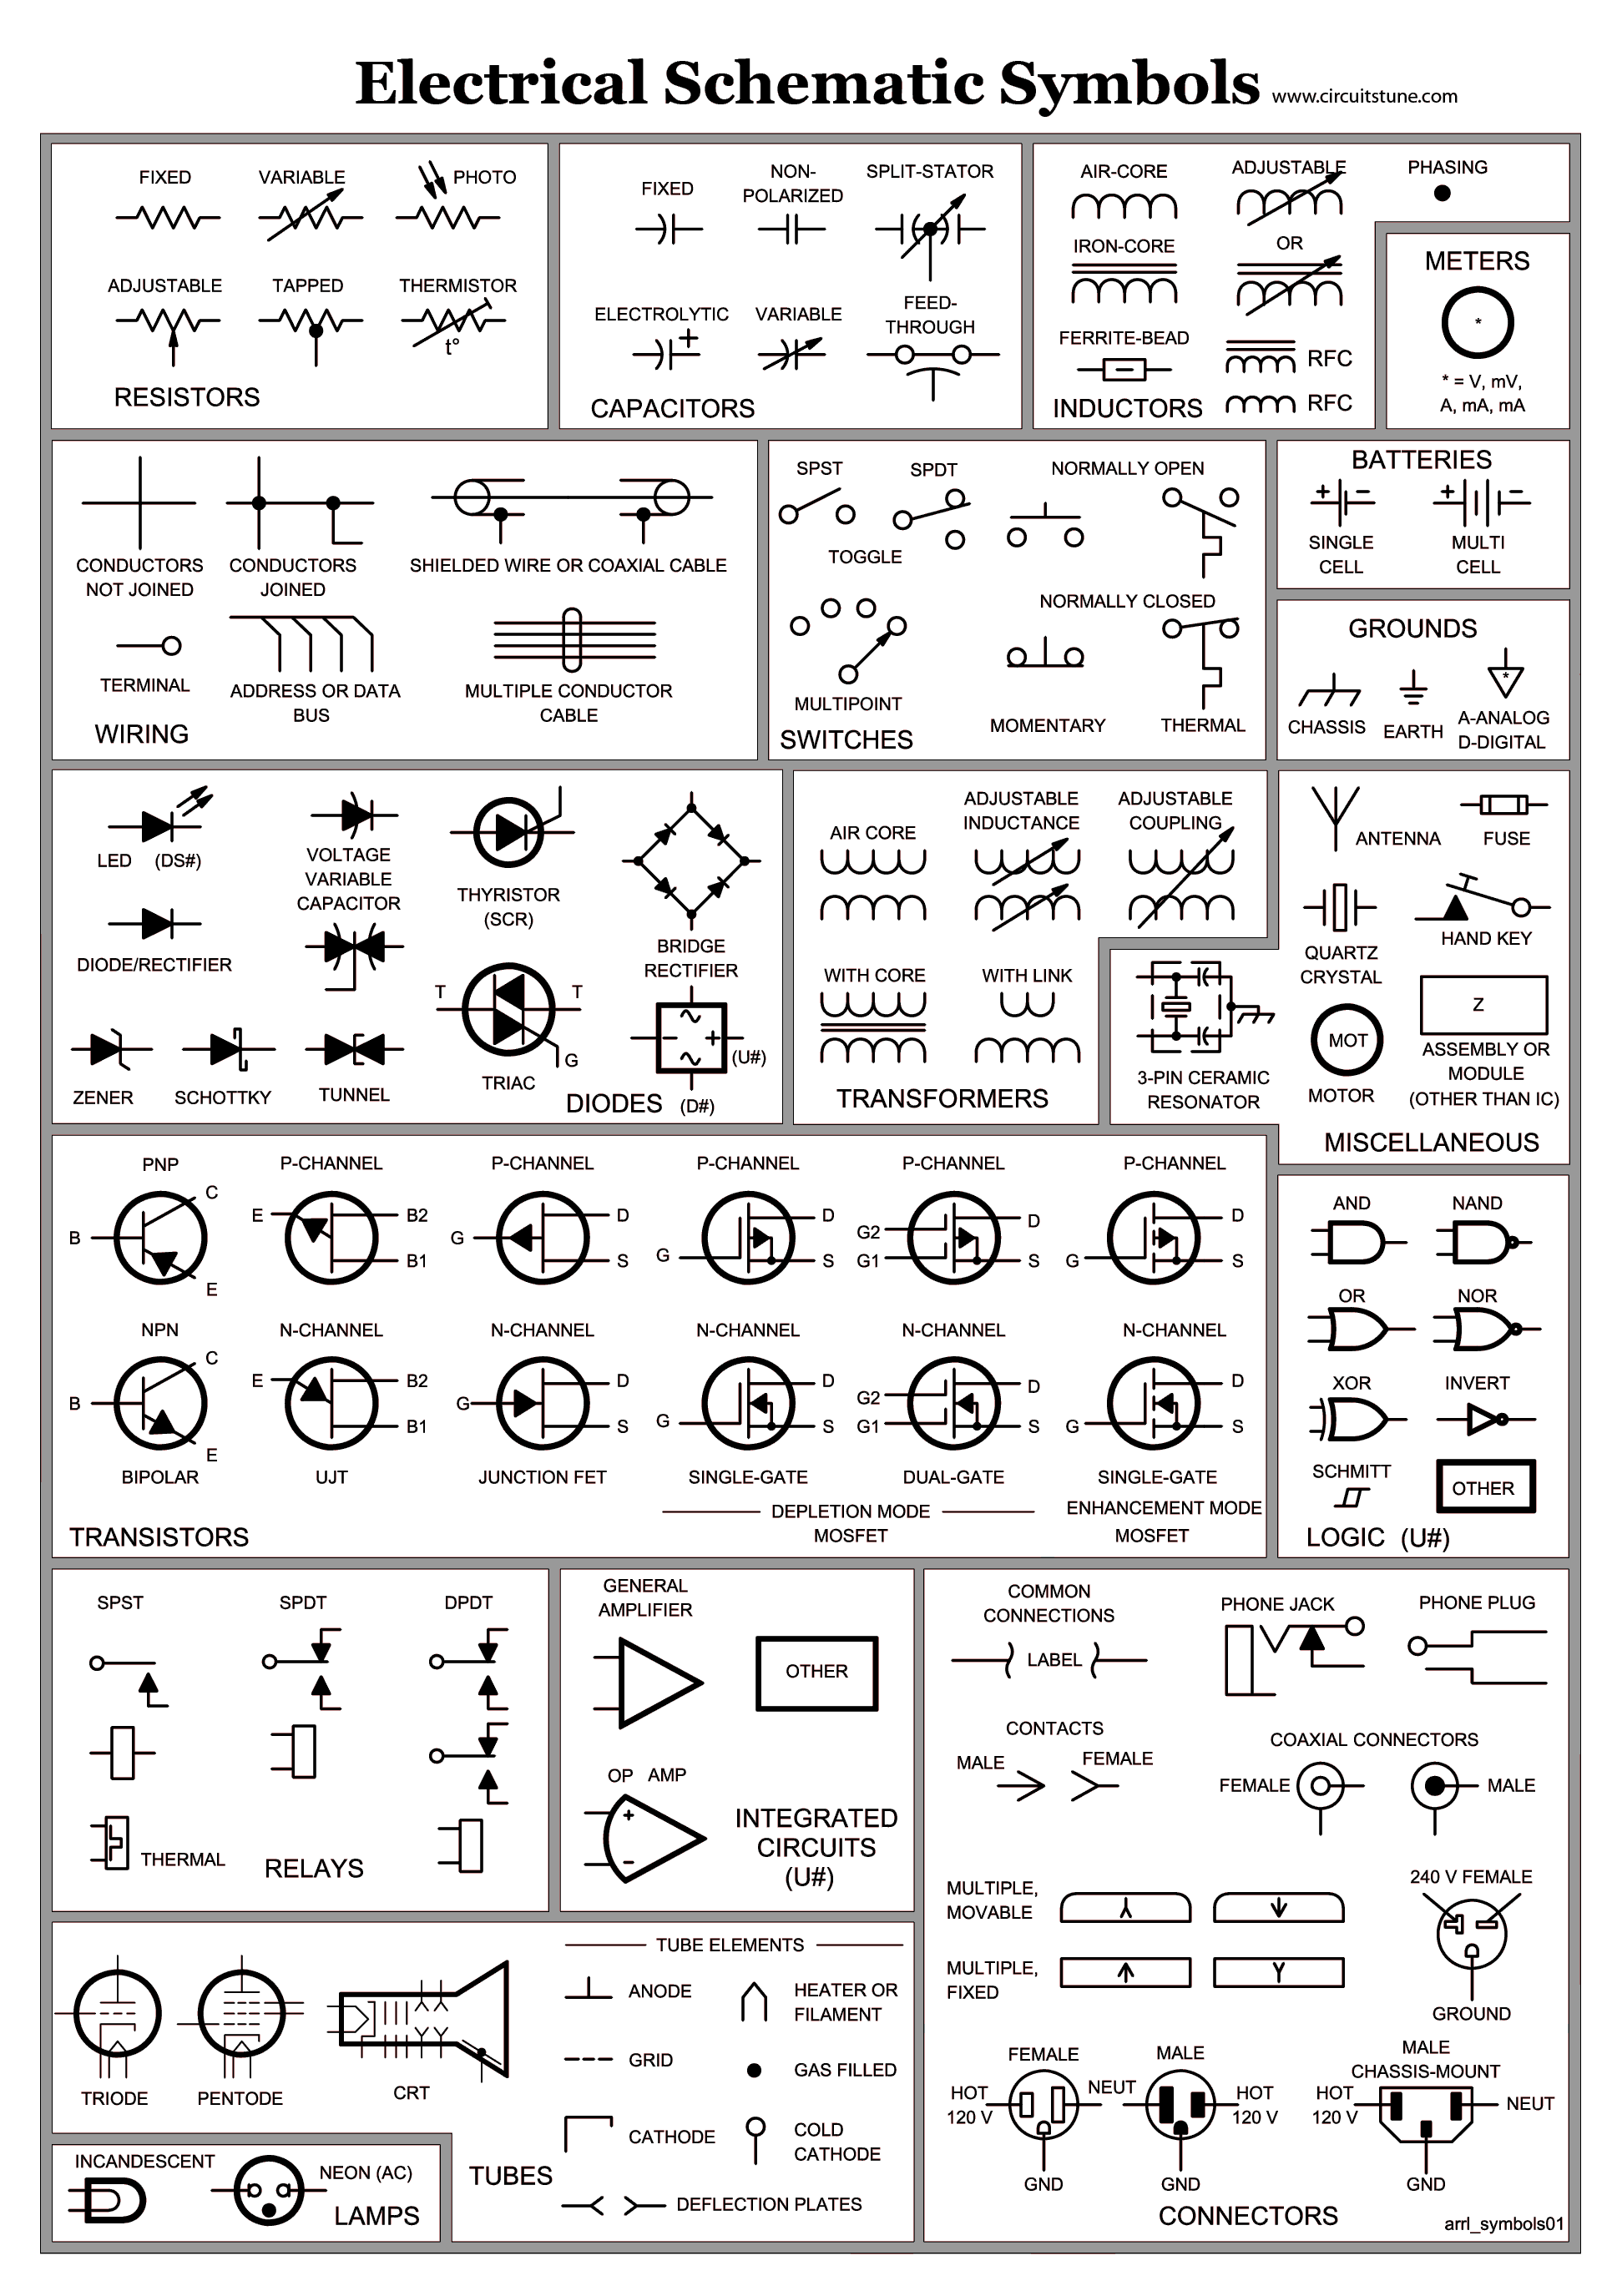 Electrical schematic symbols wire diagram